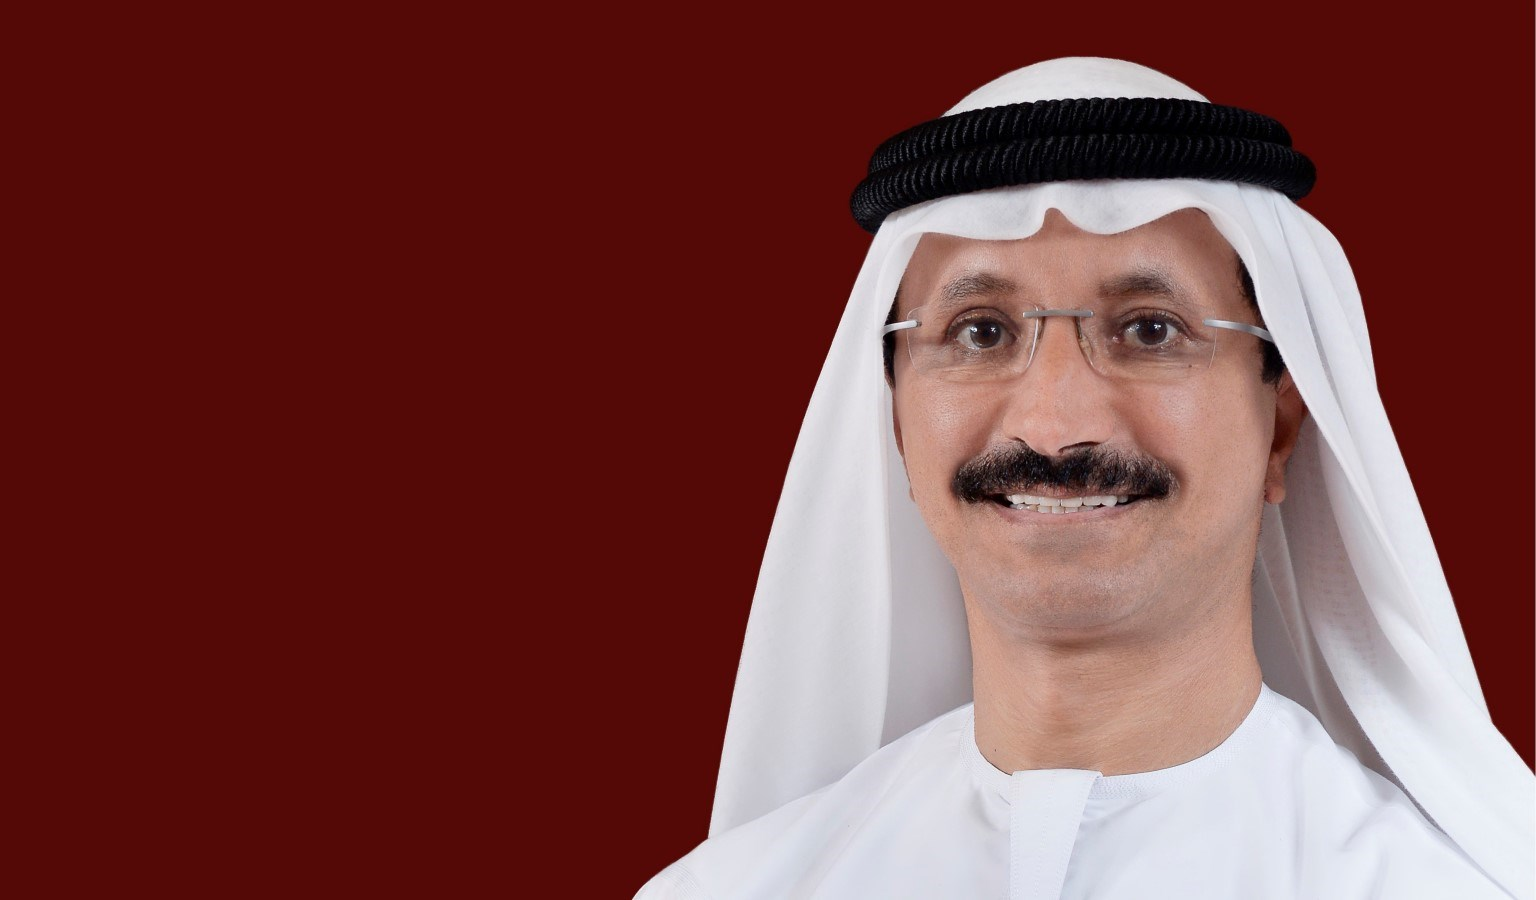 His Excellency Sultan Ahmed bin Sulayem Chairman of Dubai Ports Customs and Free Zones Corporation Chairman of DMCA